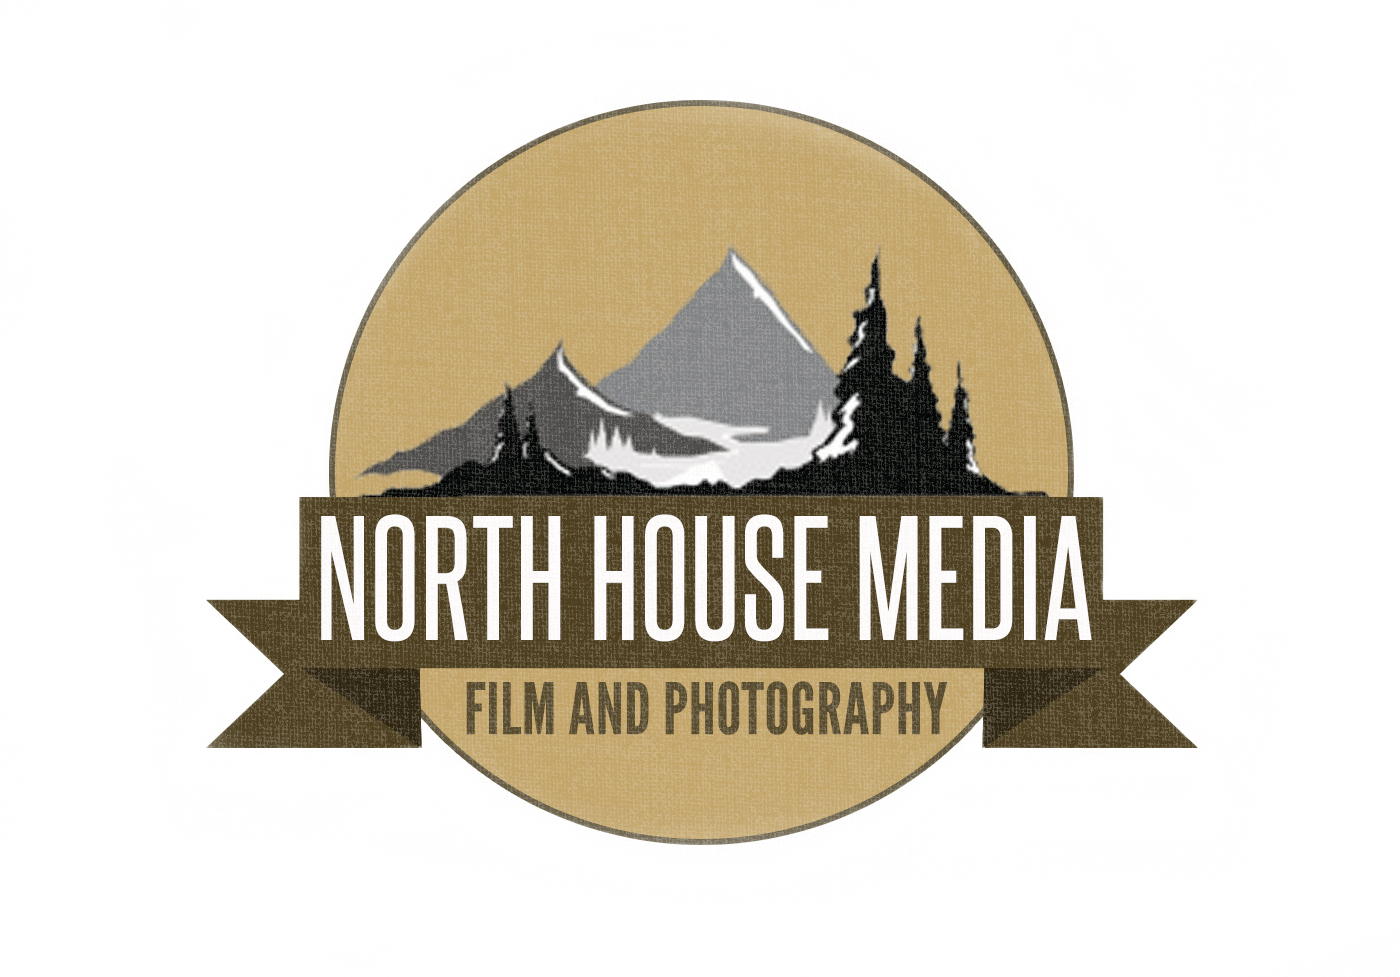 North House Media